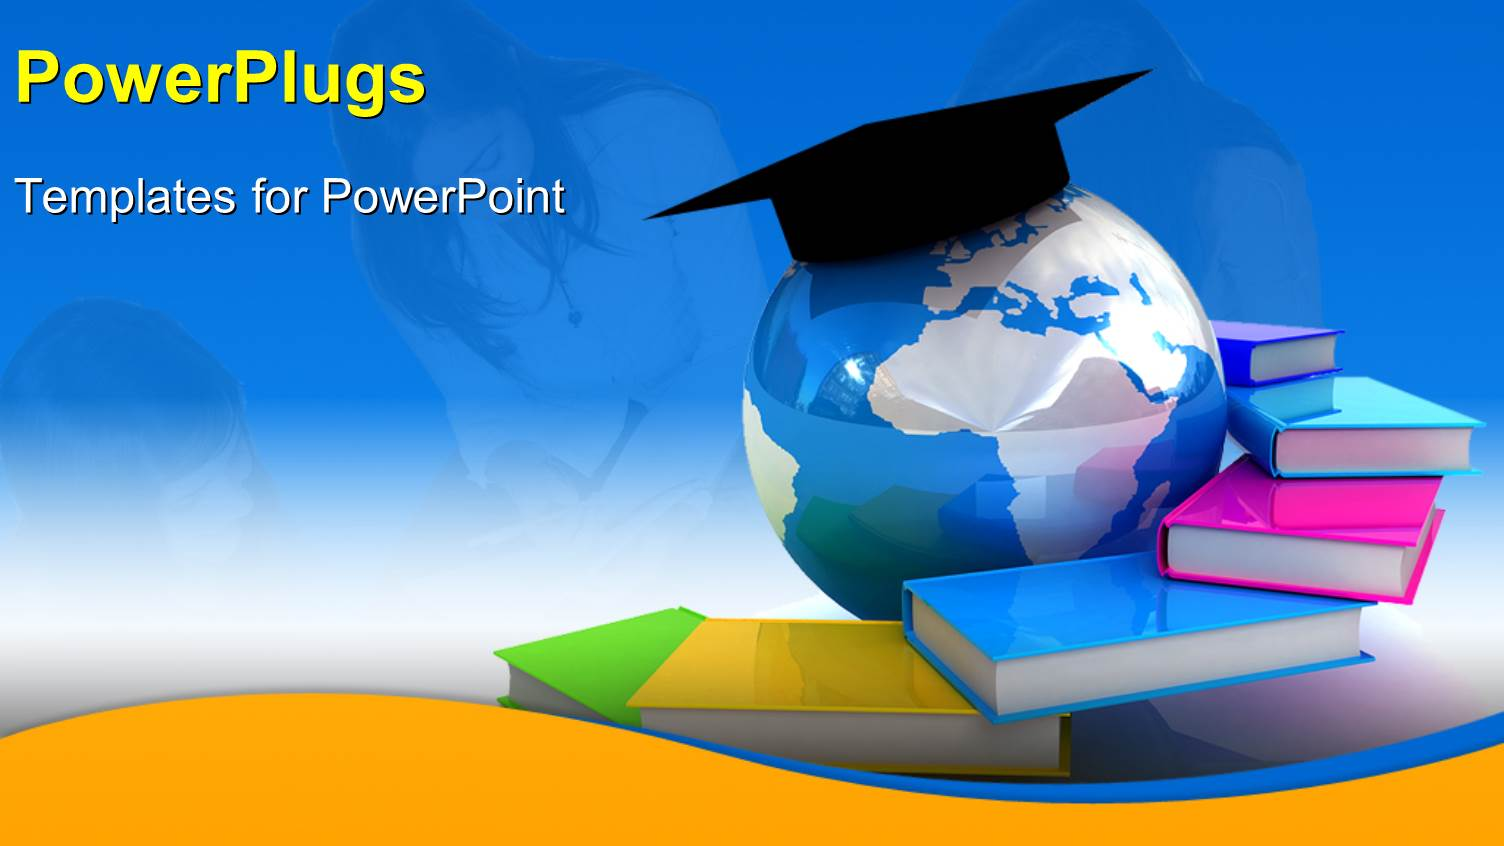 PowerPoint Template: Globe, Books With Students In